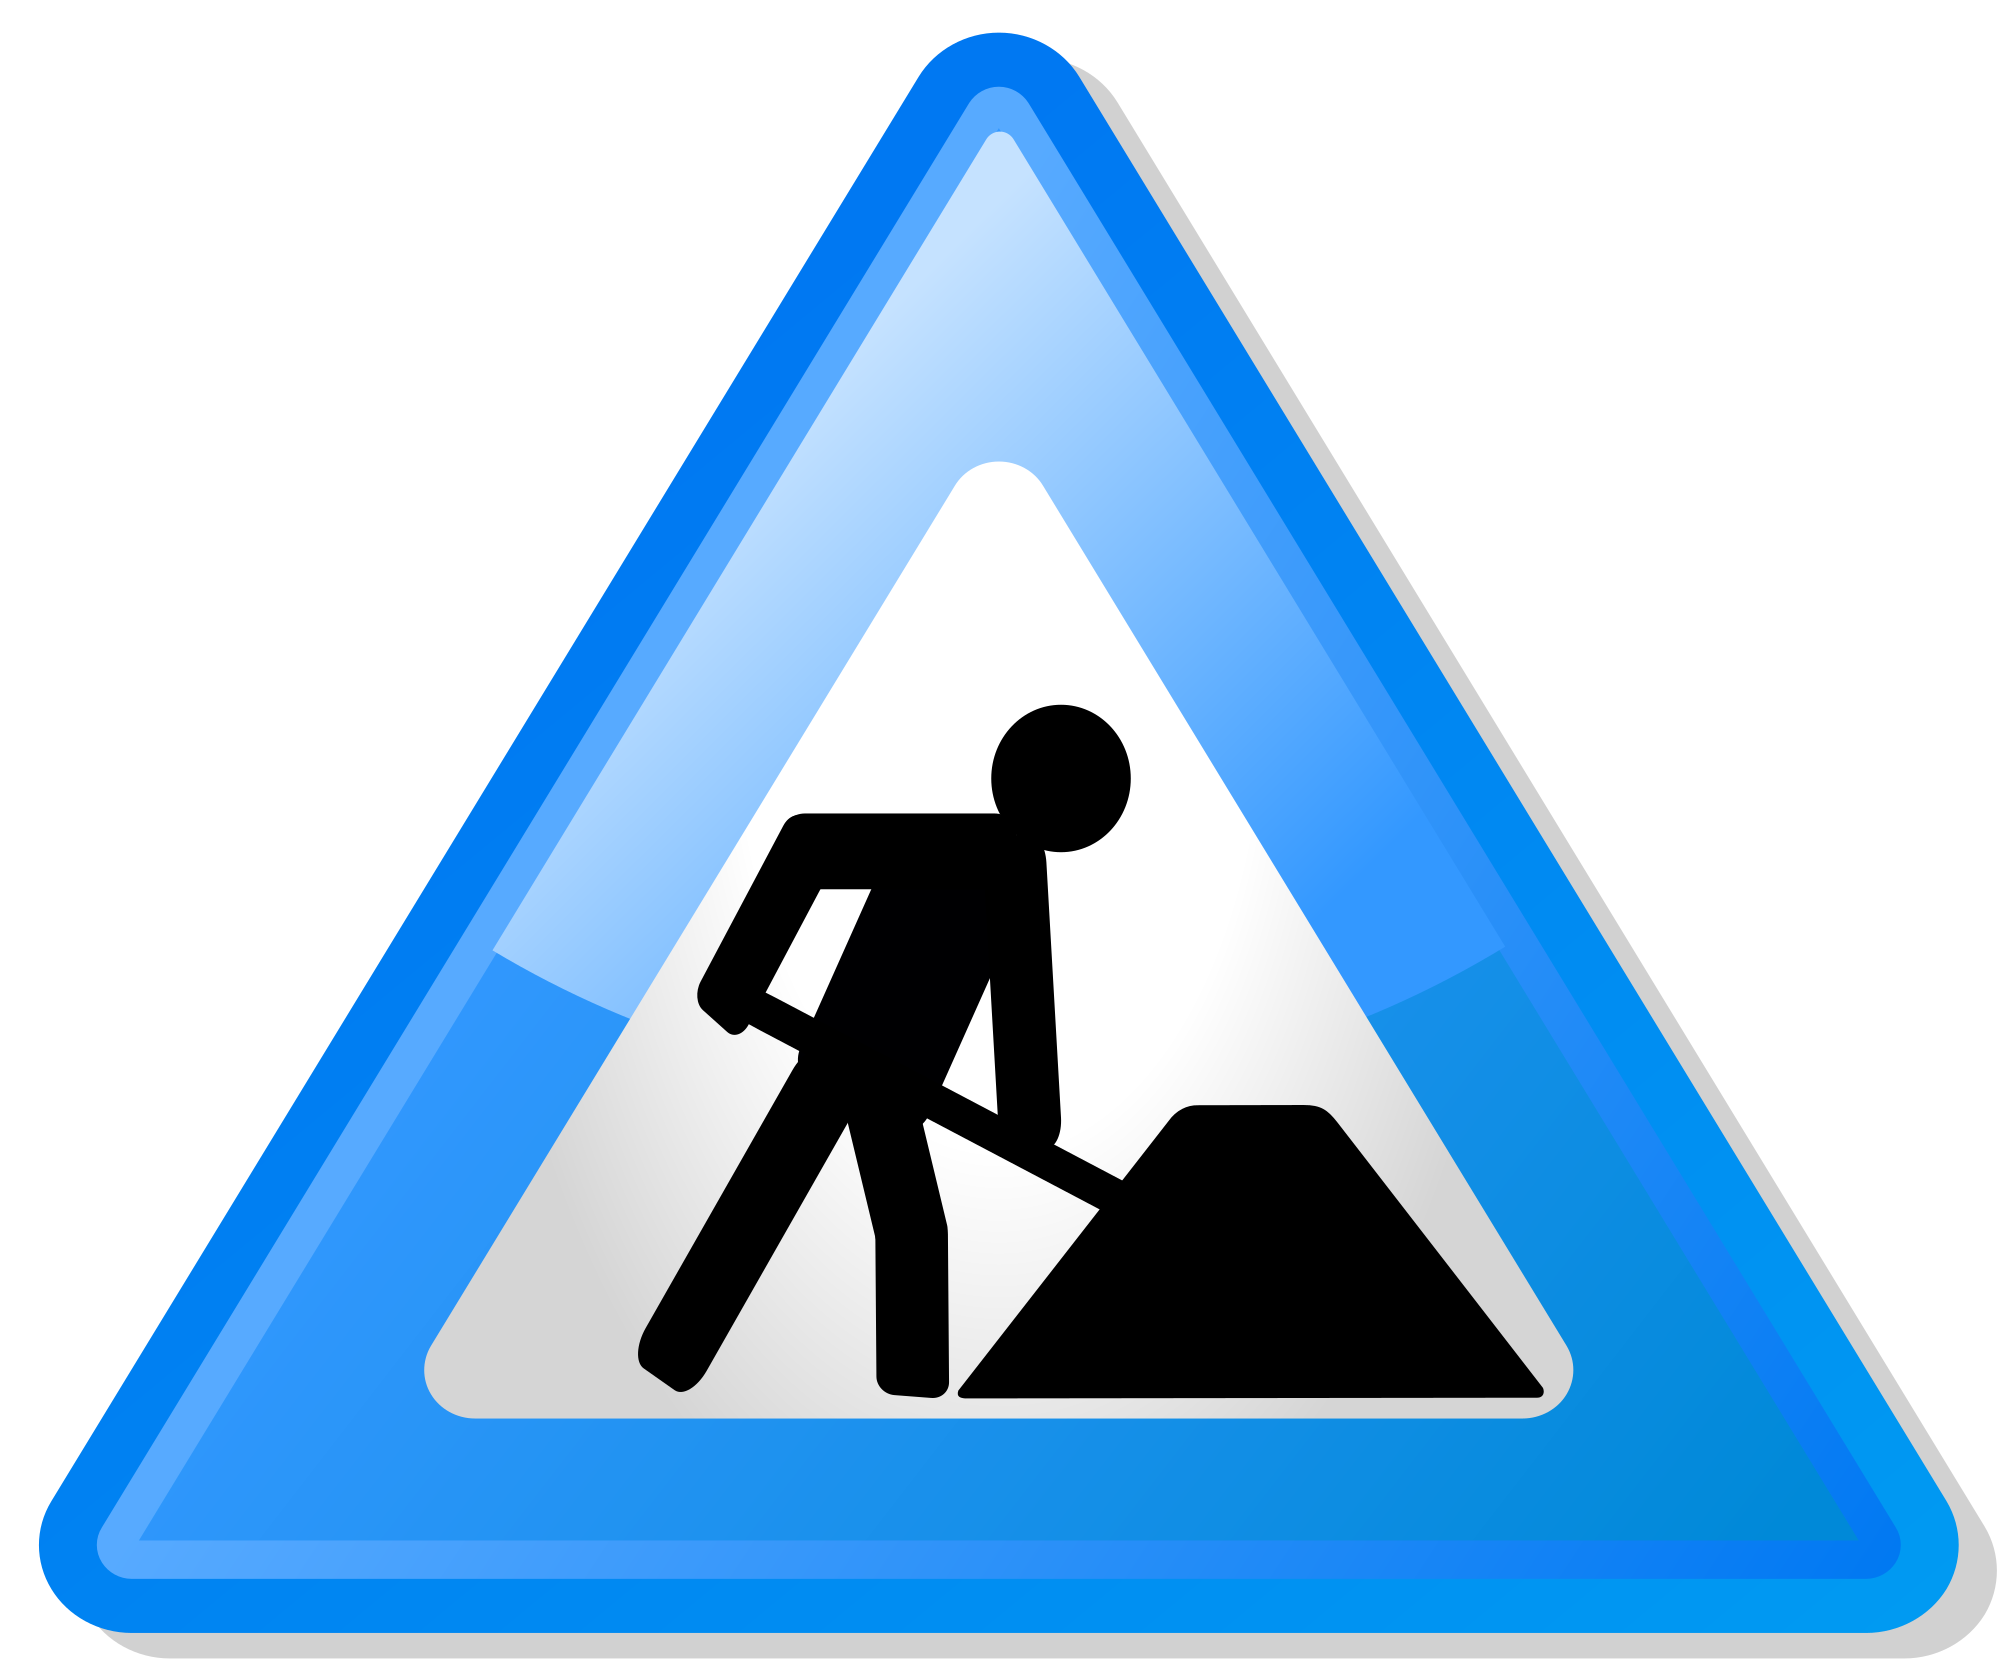 2000x1667 Fileunder Construction Icon Blue.svg